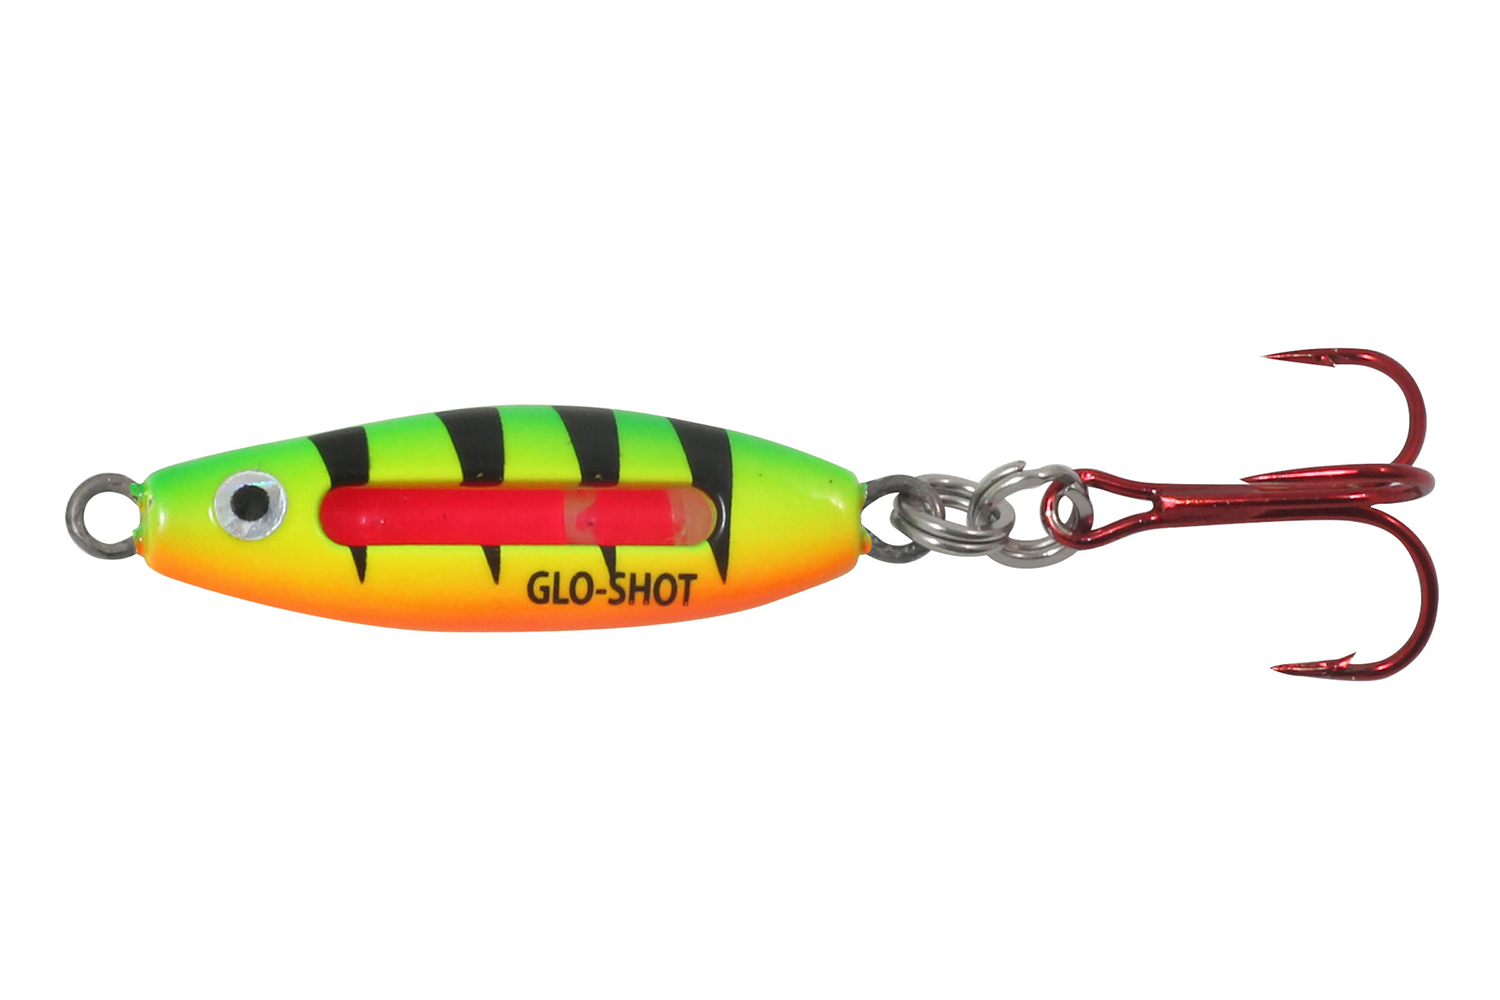 A quality spoon will catch fish beneath the ice, and the Glo-Shot fits the bill.